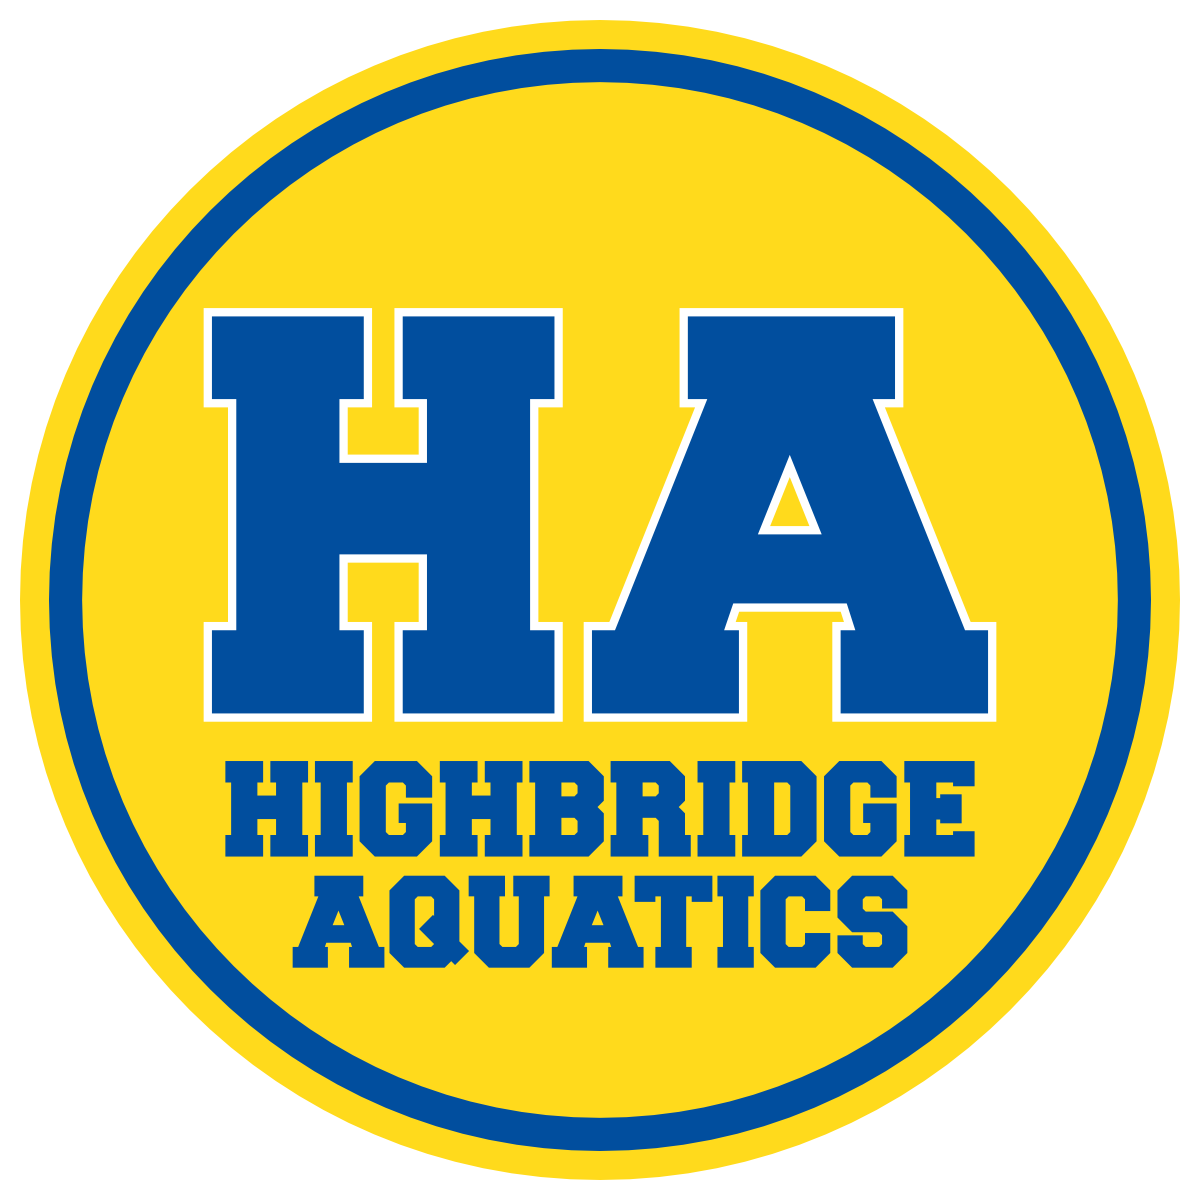 Highbridge Aquatics Swim Club